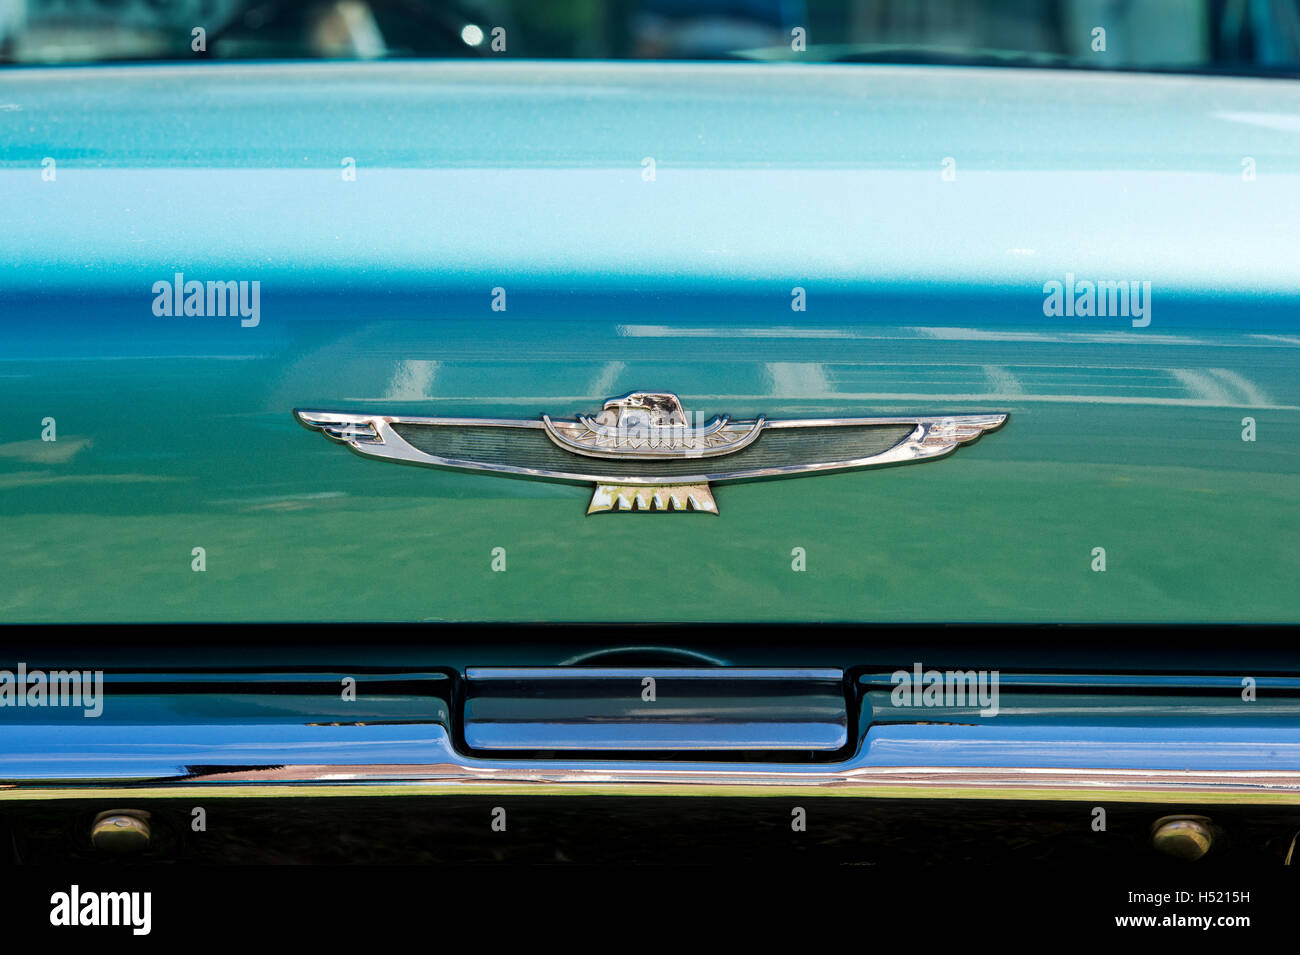 Ford Thunderbird Rear End Classic American T Bird Stock Photo